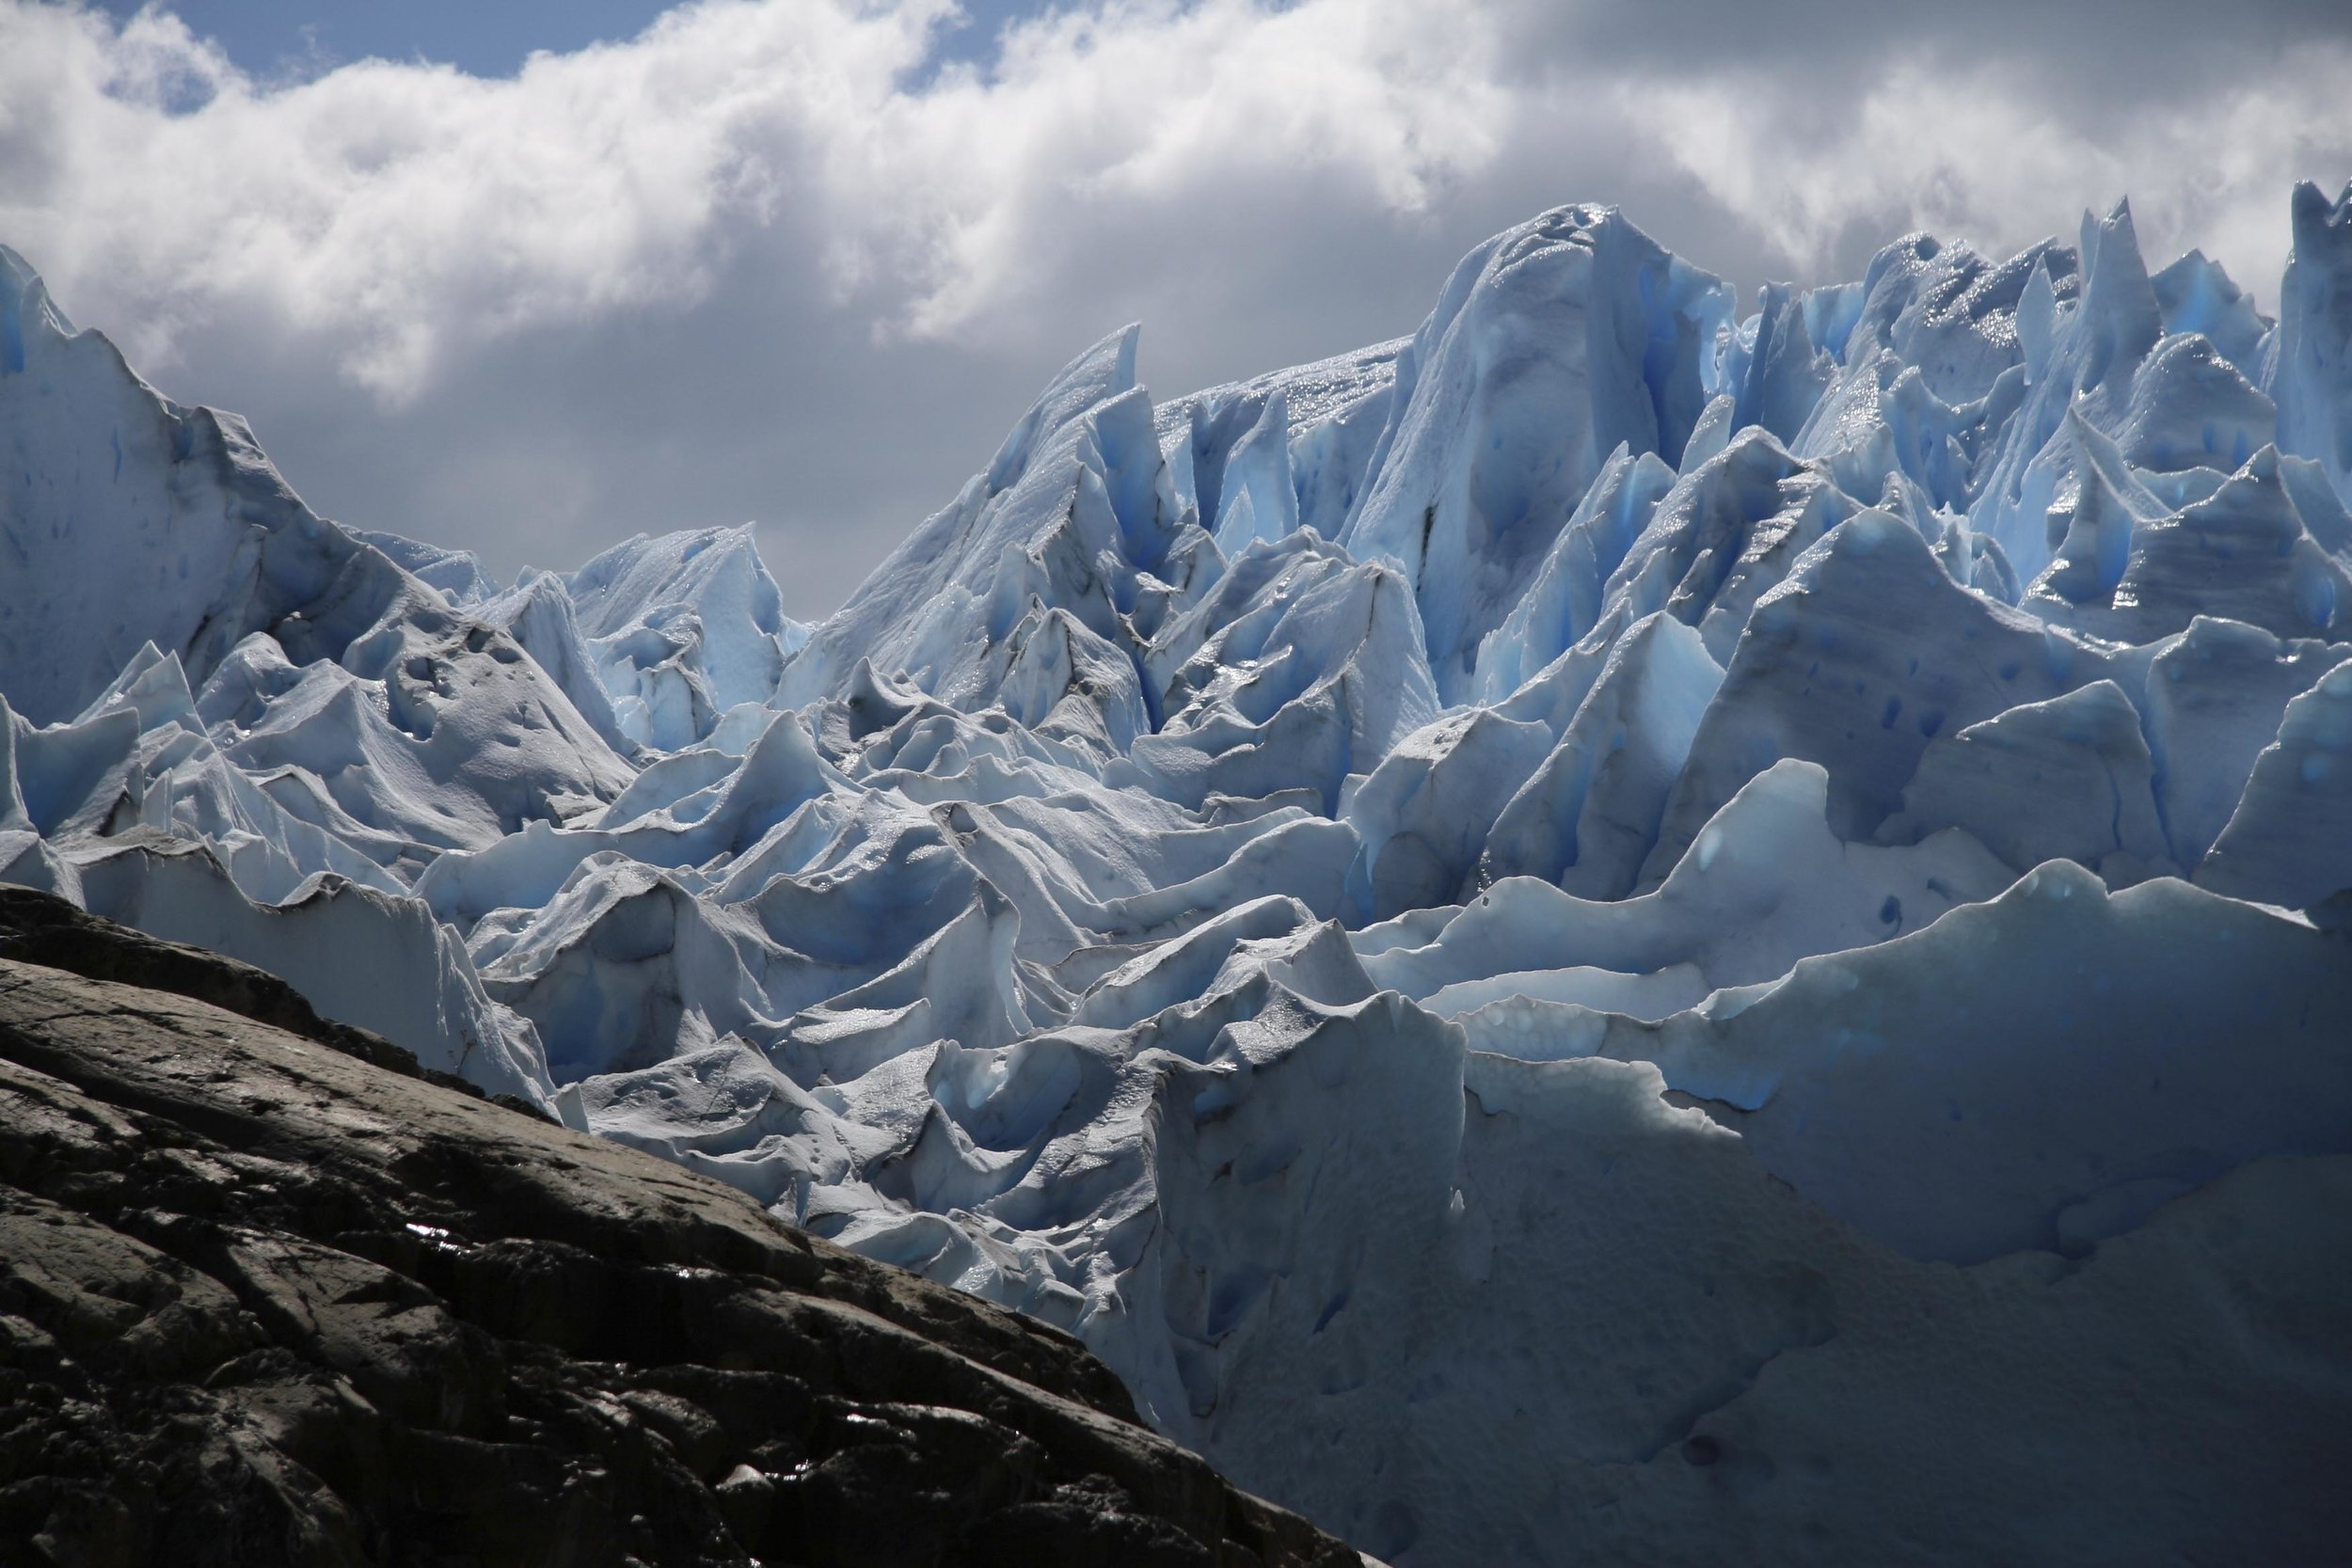 The carved edges of the glacier.. A skeletal tree. Birds in a row. Pebbles on the shore.